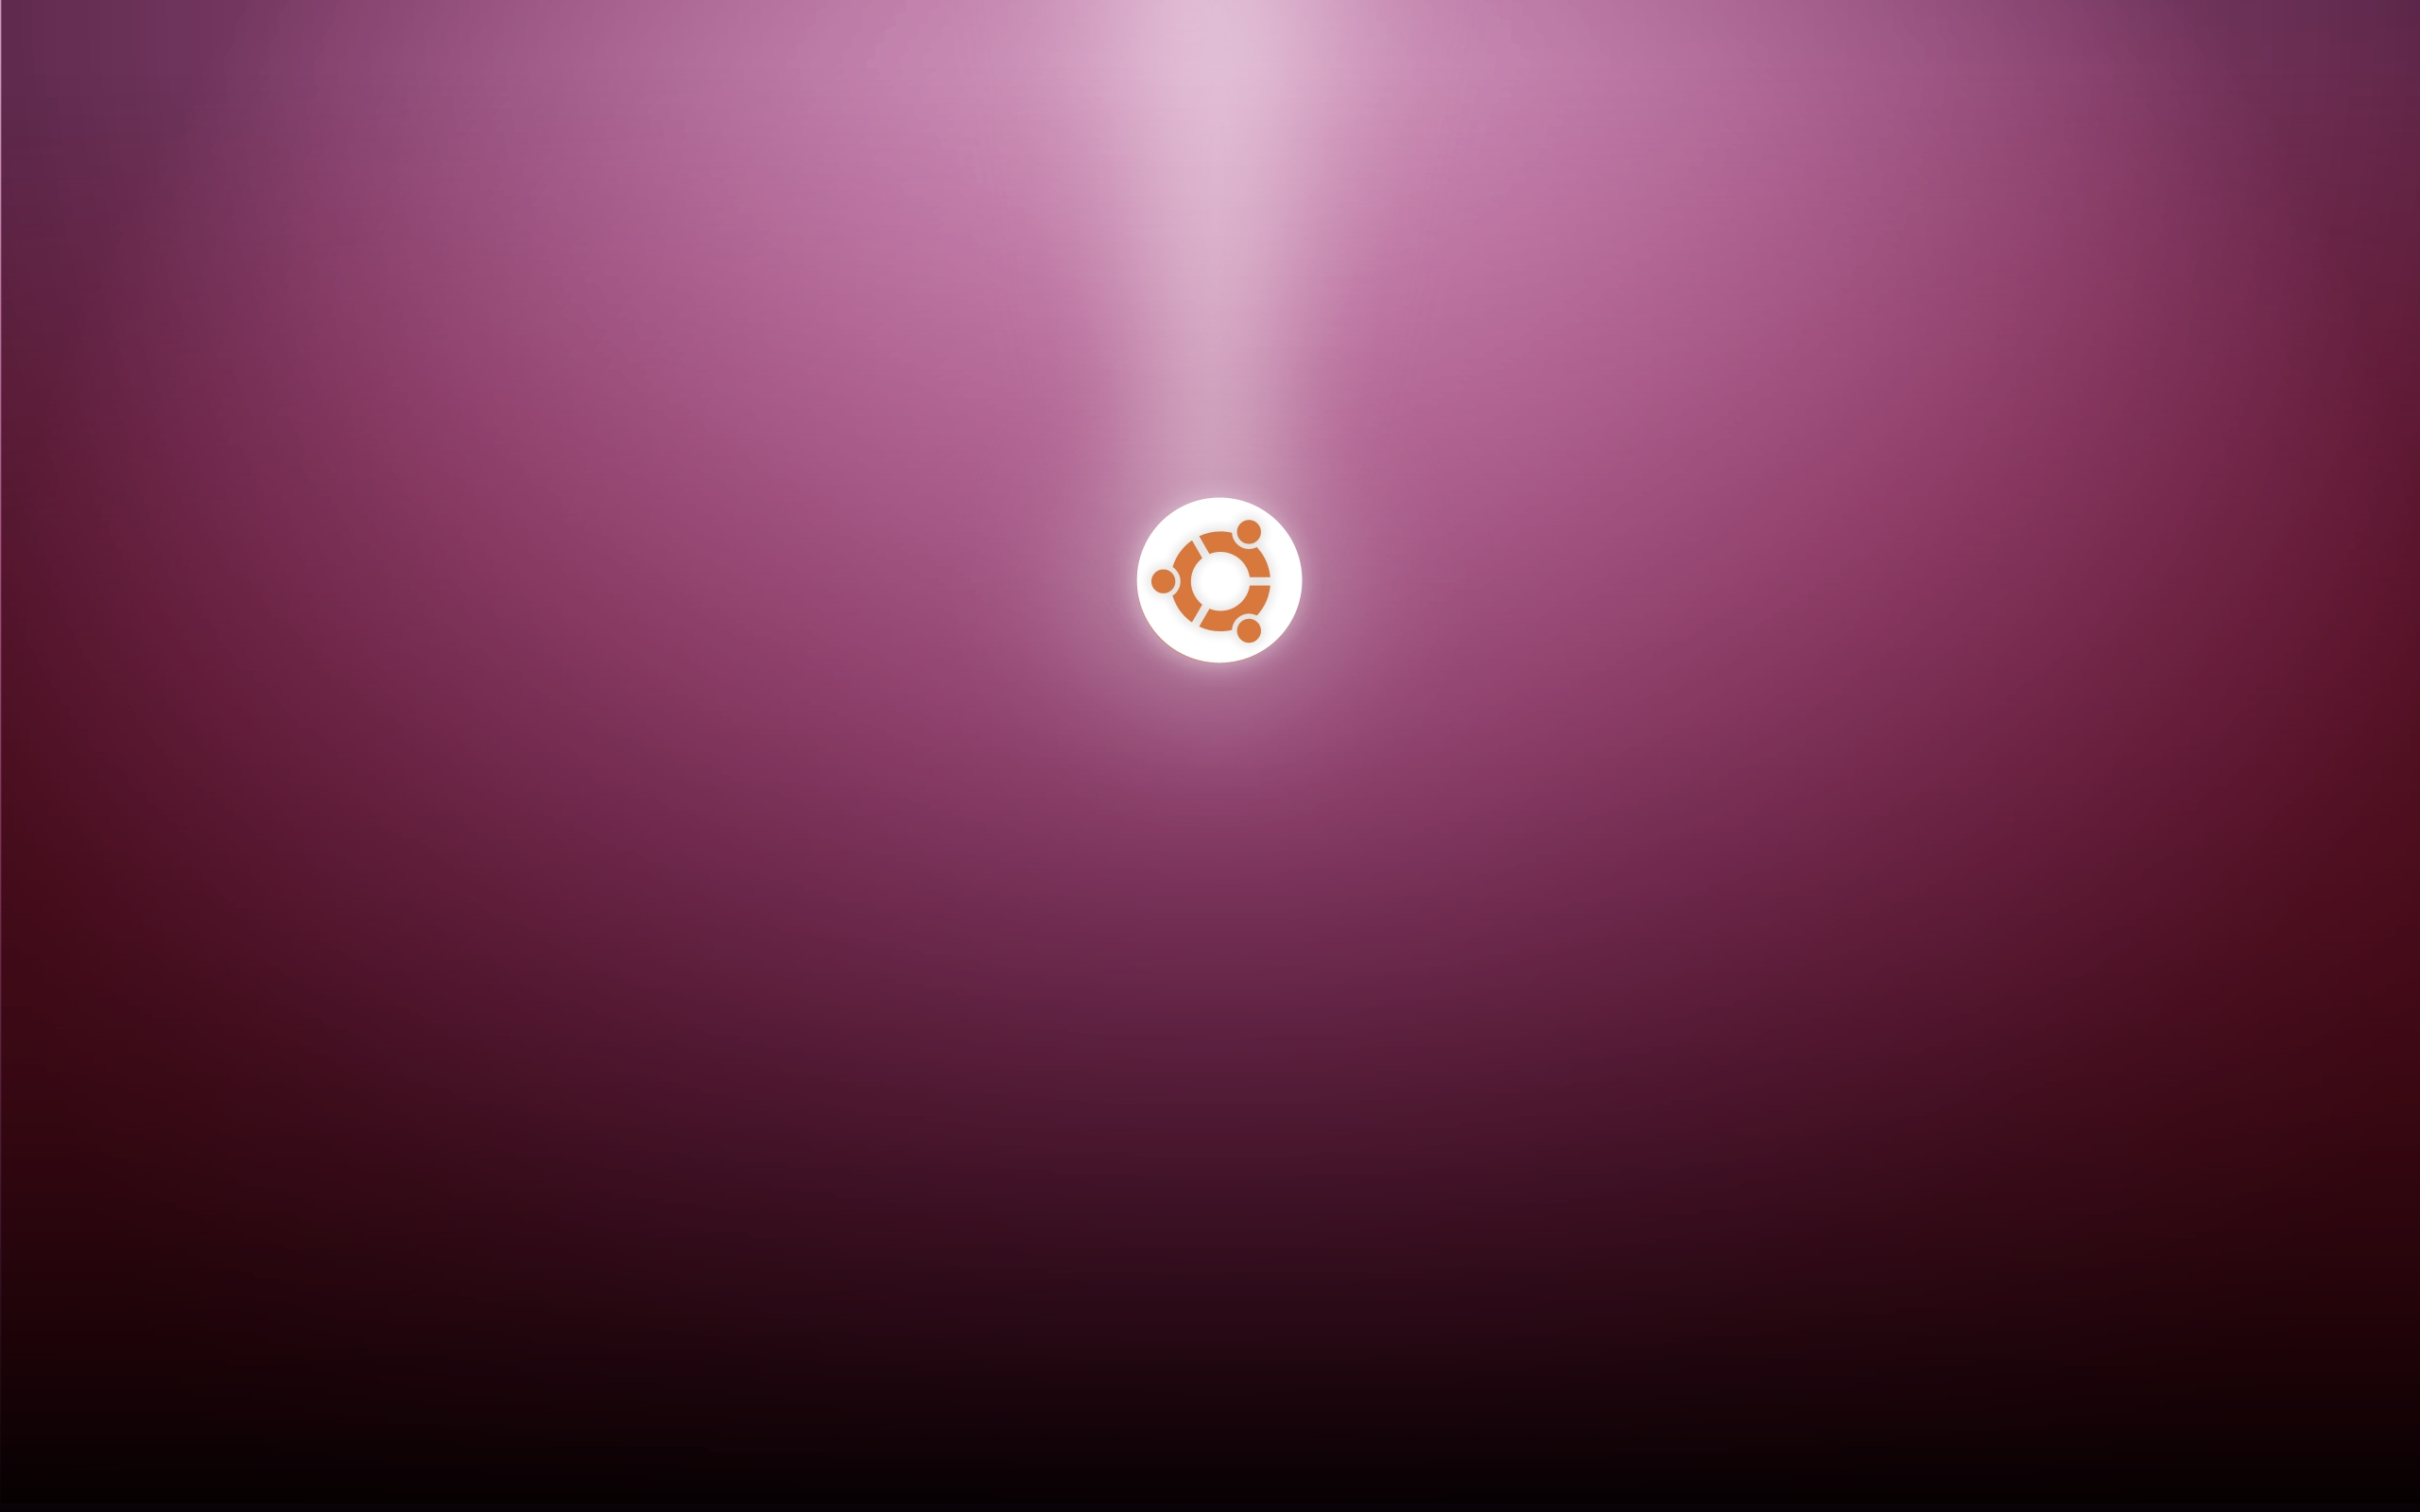 ubuntu wallpaper purple cool